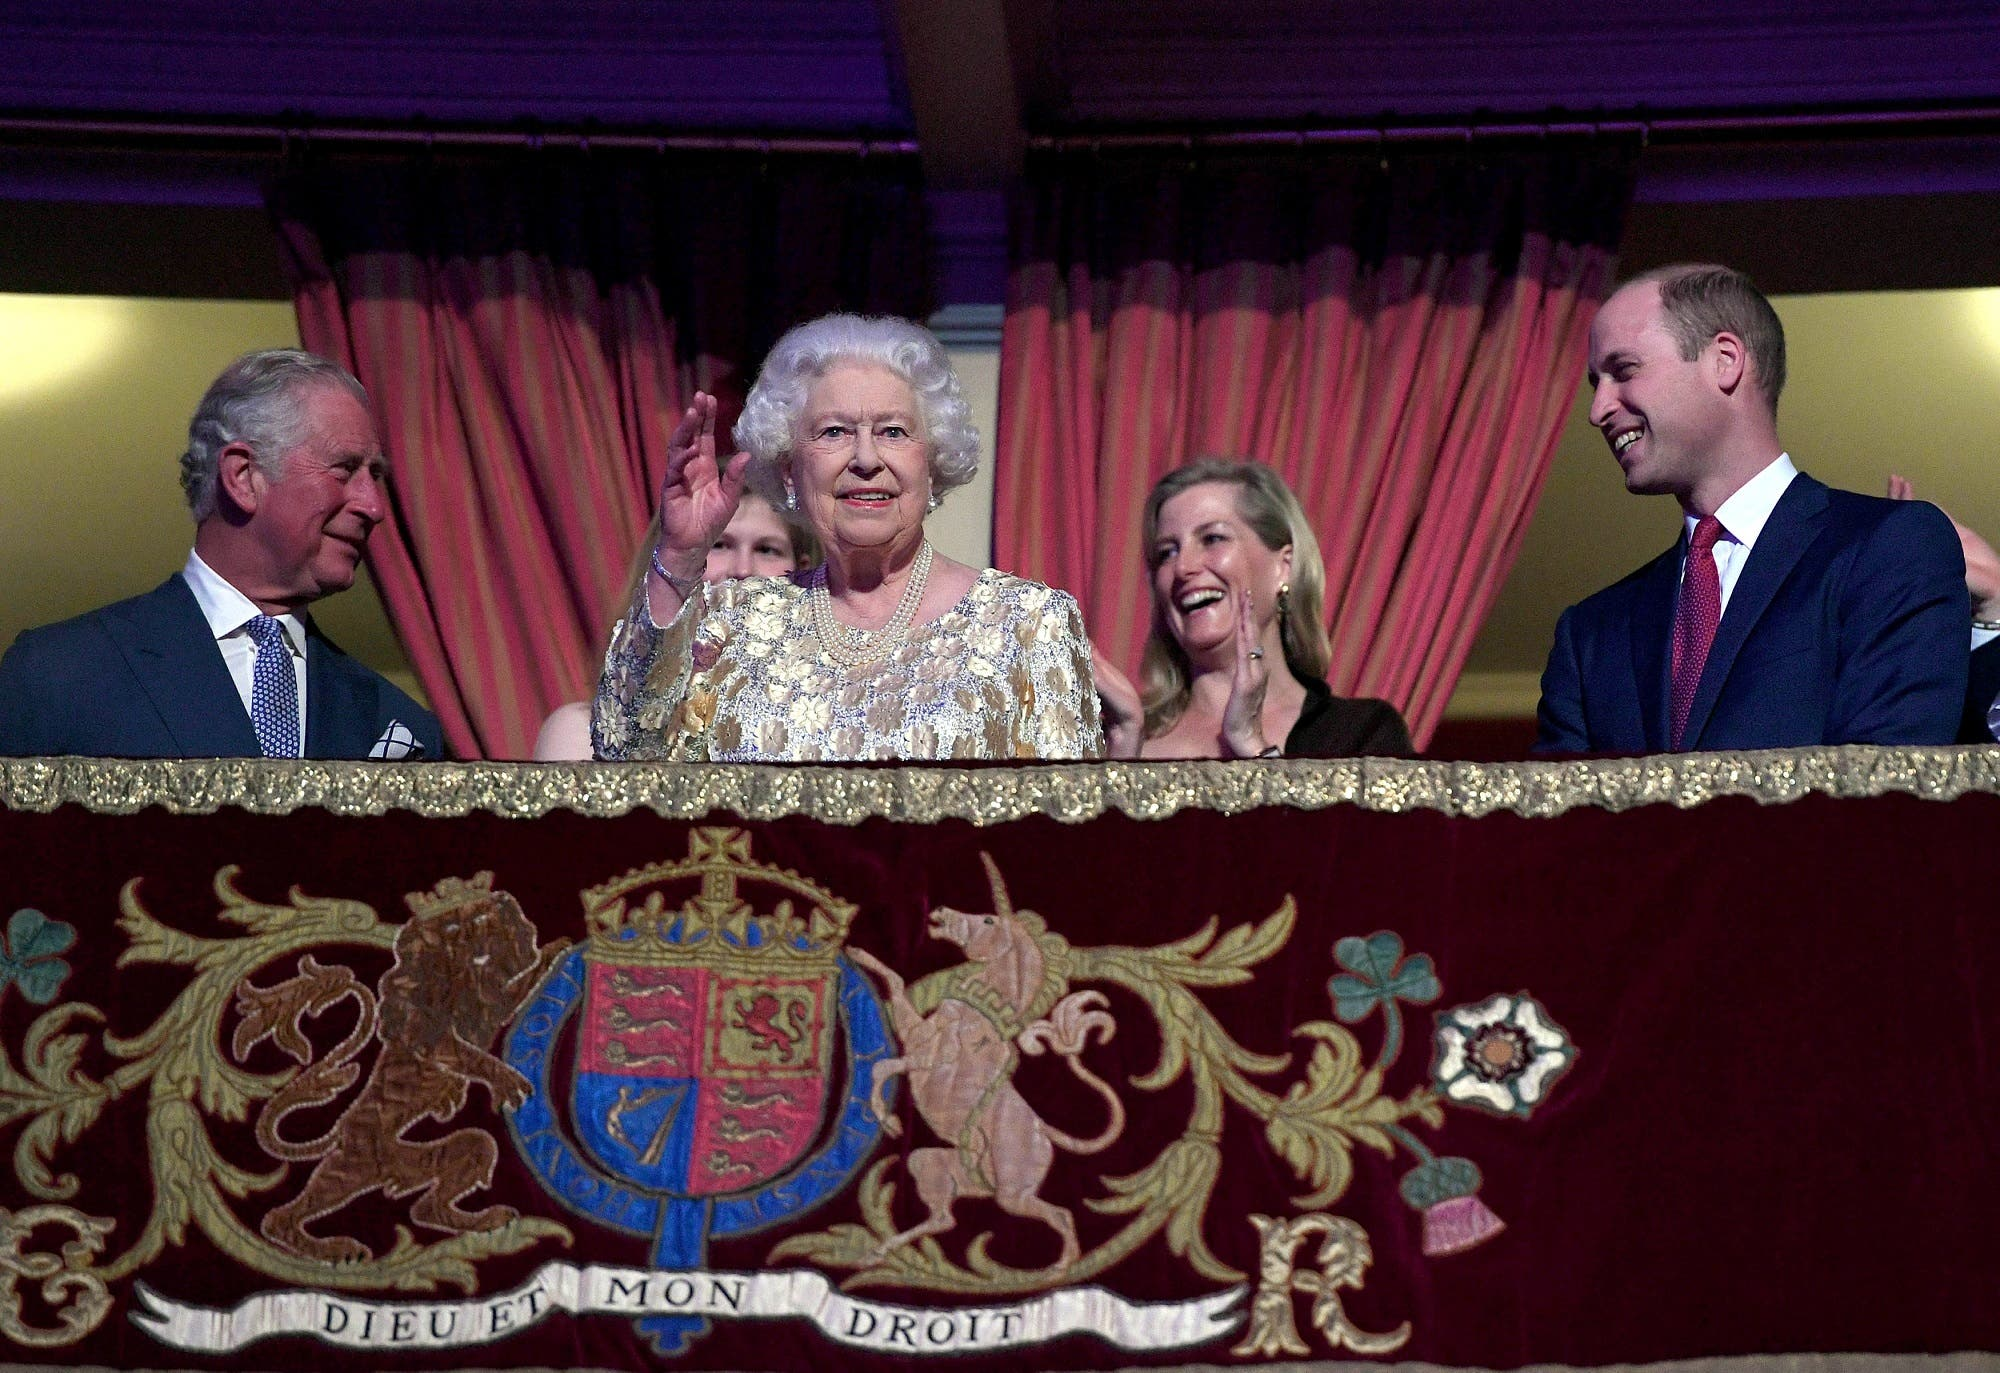 Queen Elizabeth waves next to Prince Charles and Prince William during a special concert to celebrate her 92nd birthday at the Royal Albert Hall in London on April 21, 2018. (Reuters)